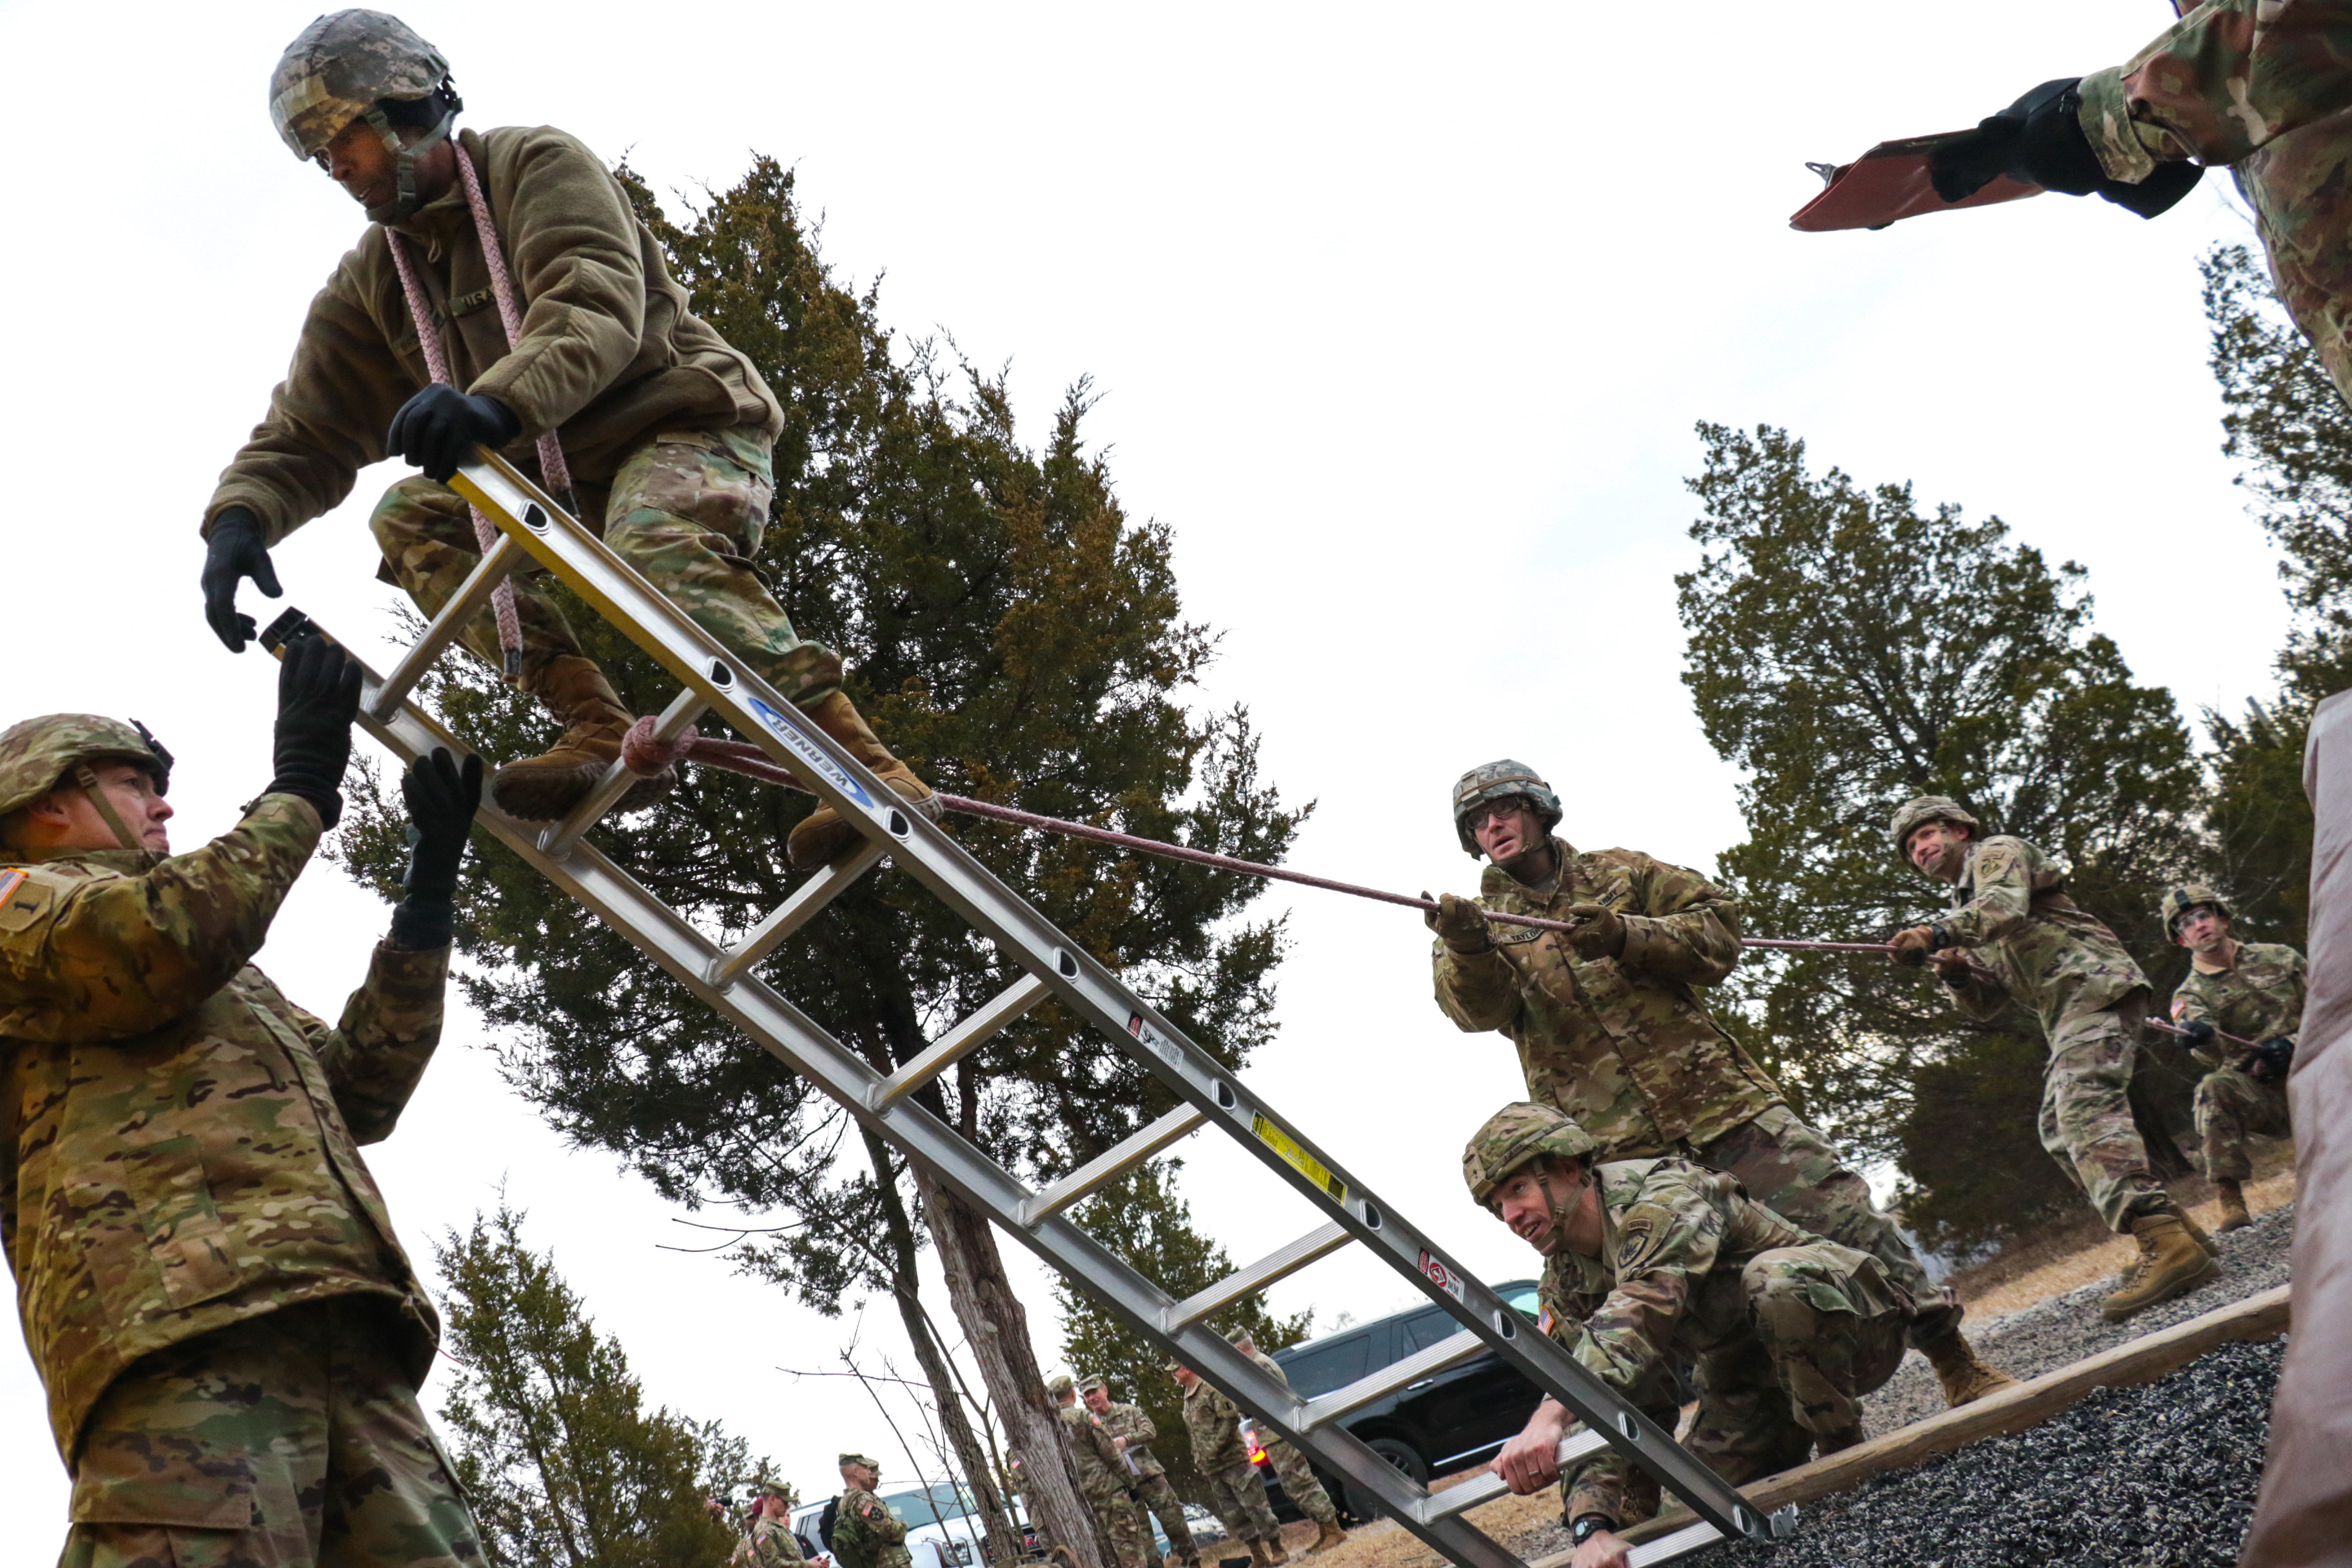 The Army's new battalion commander selection process is just like the NFL Scouting Combine, service chief says